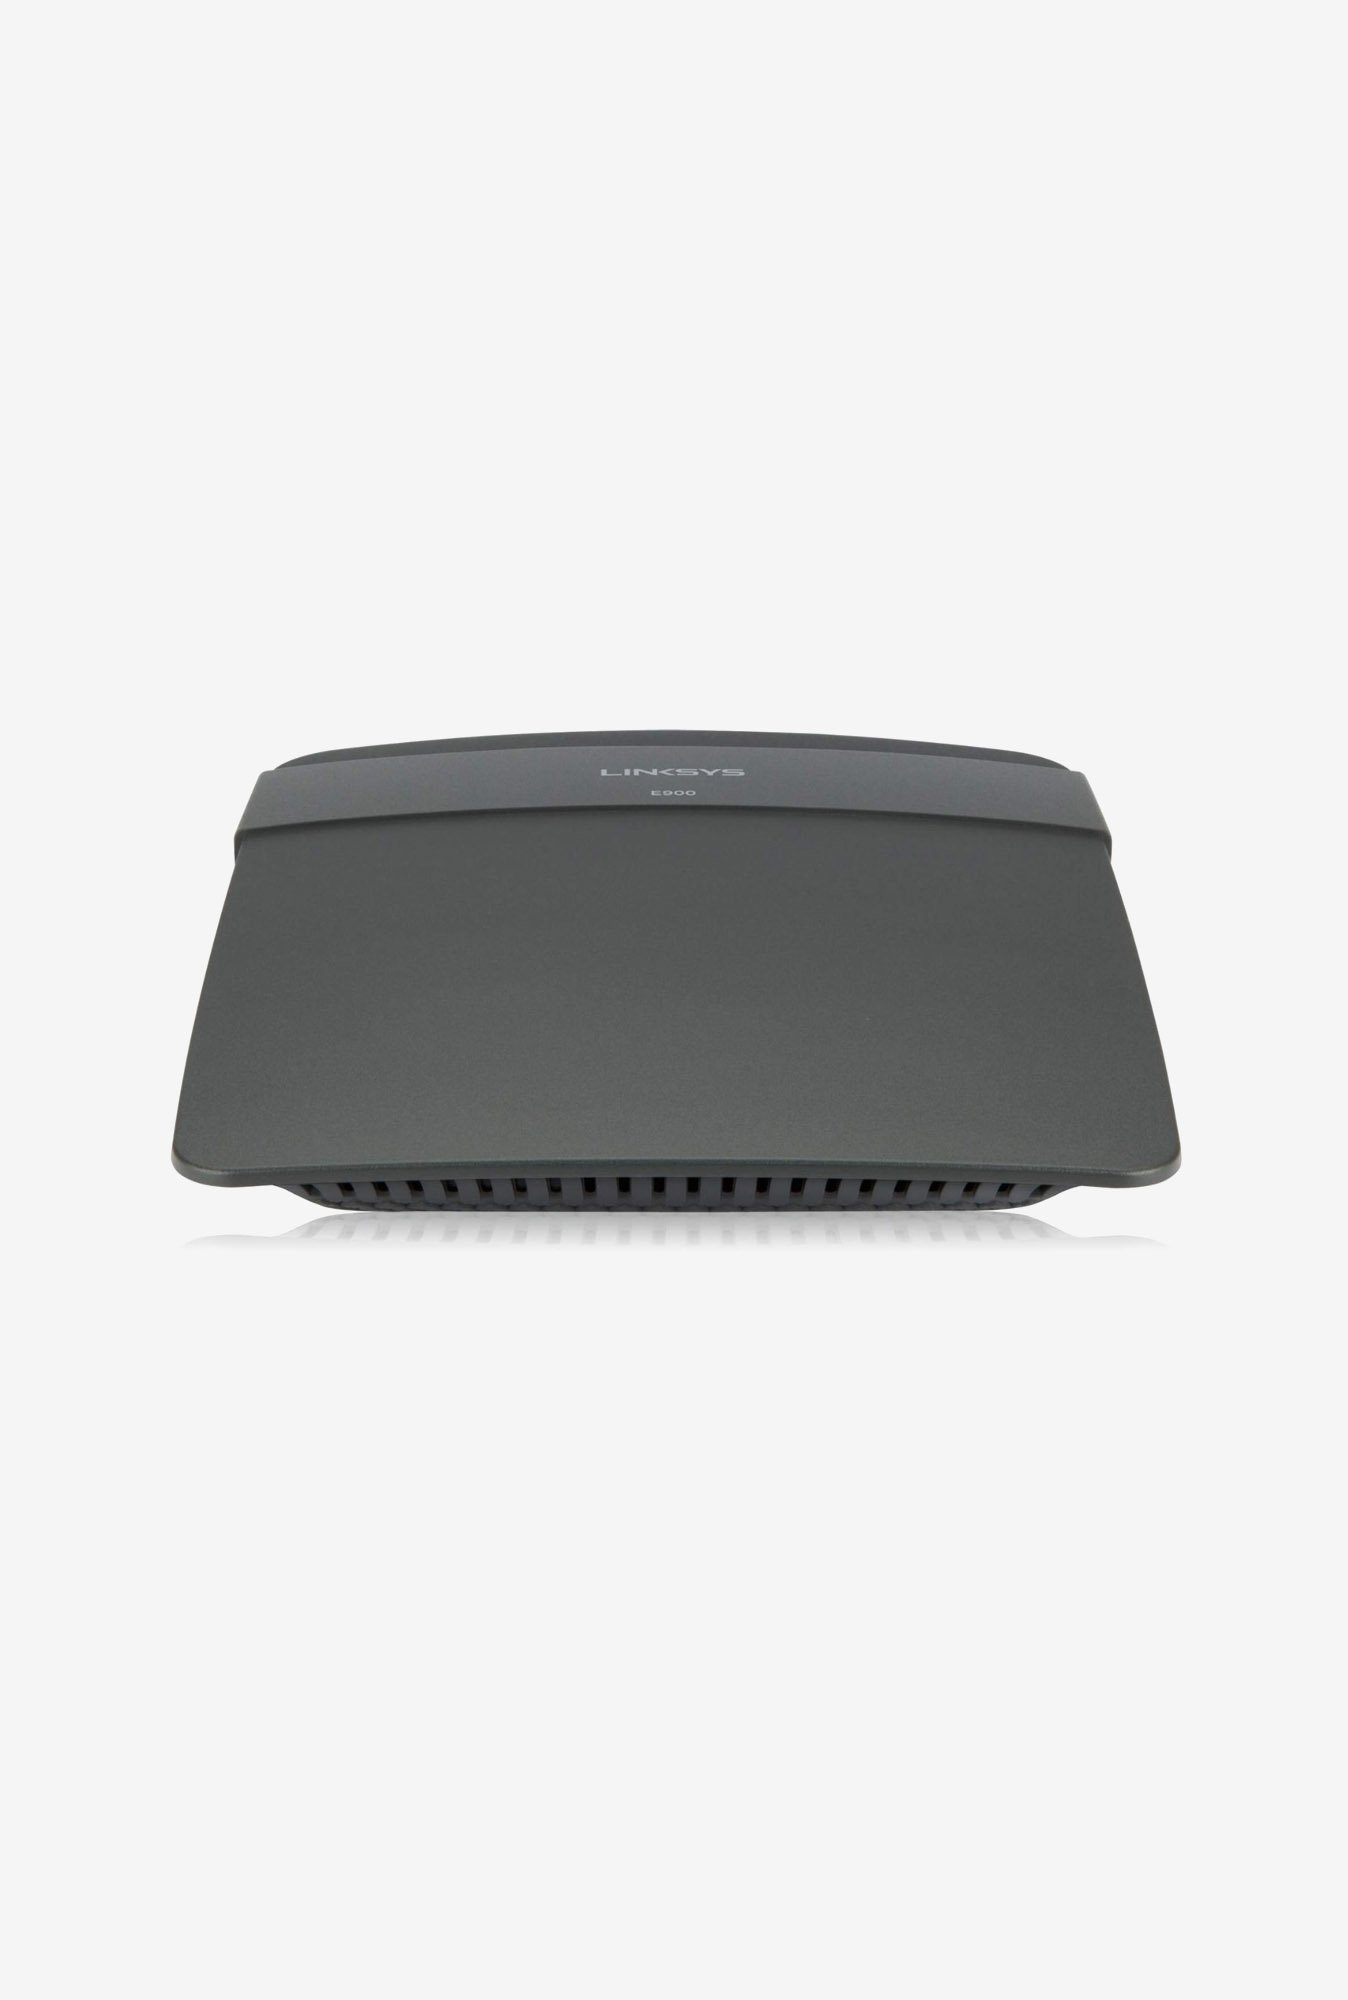 Linksys N300 E900-IP Wireless Router Black